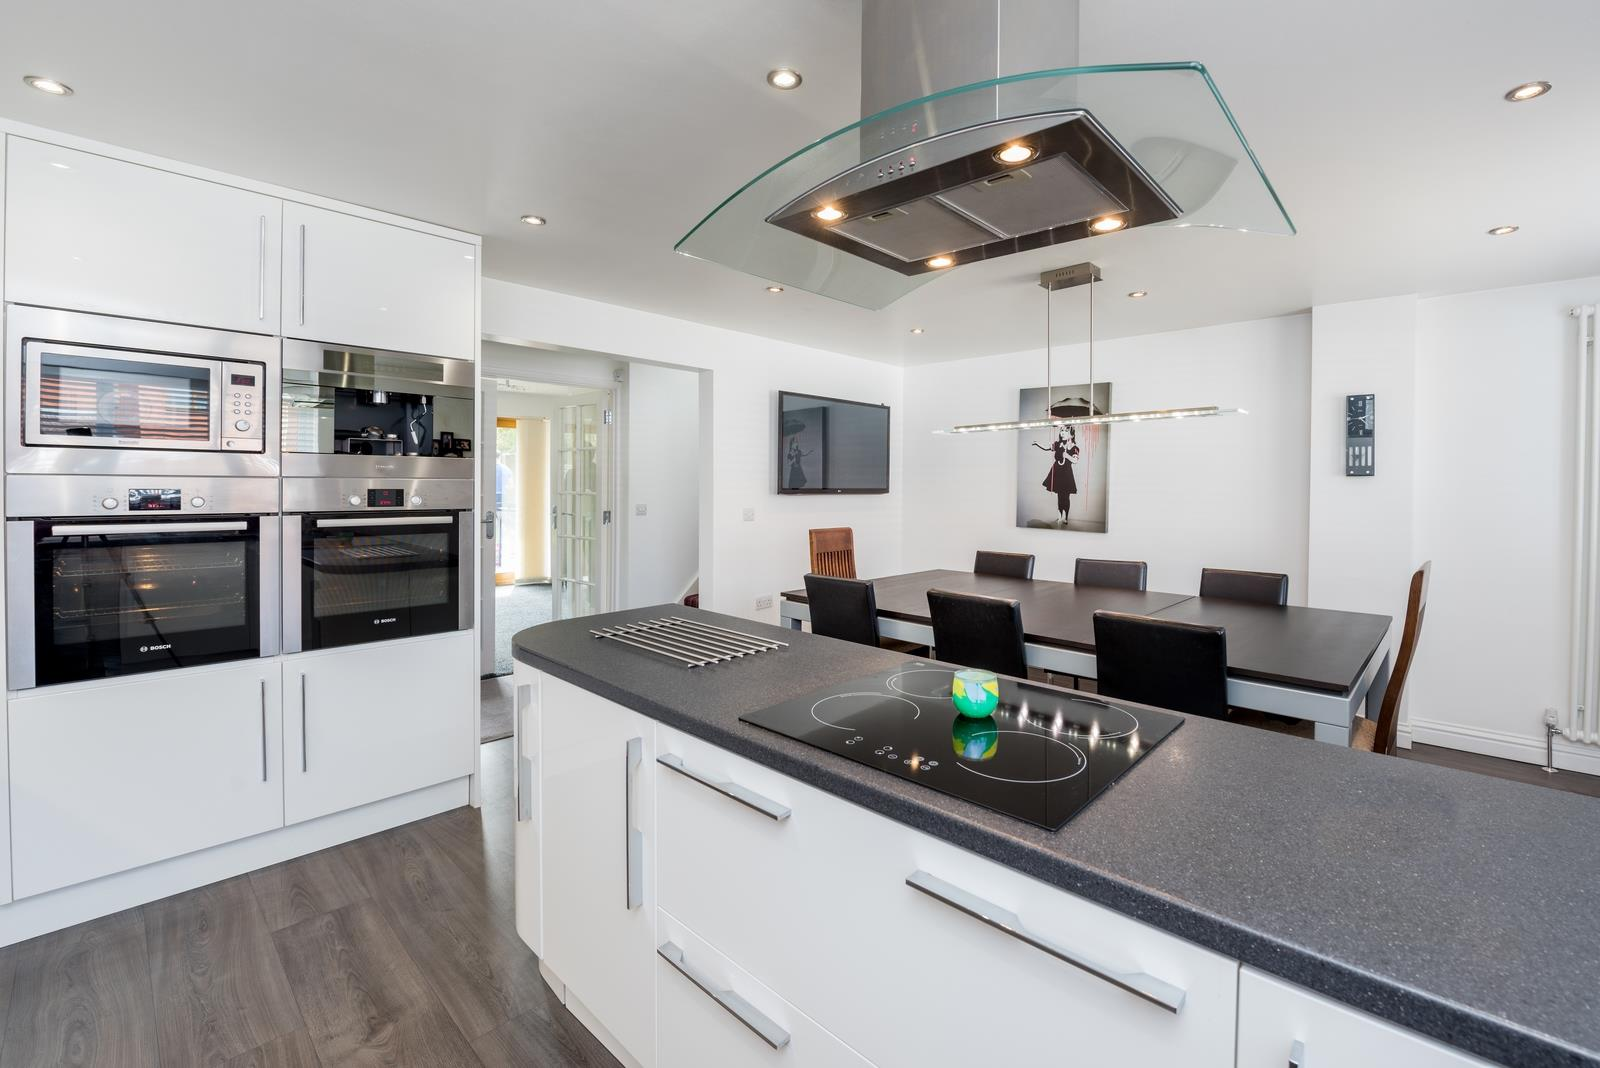 3 bed house for sale in Fallodon Way, Bristol  - Property Image 5